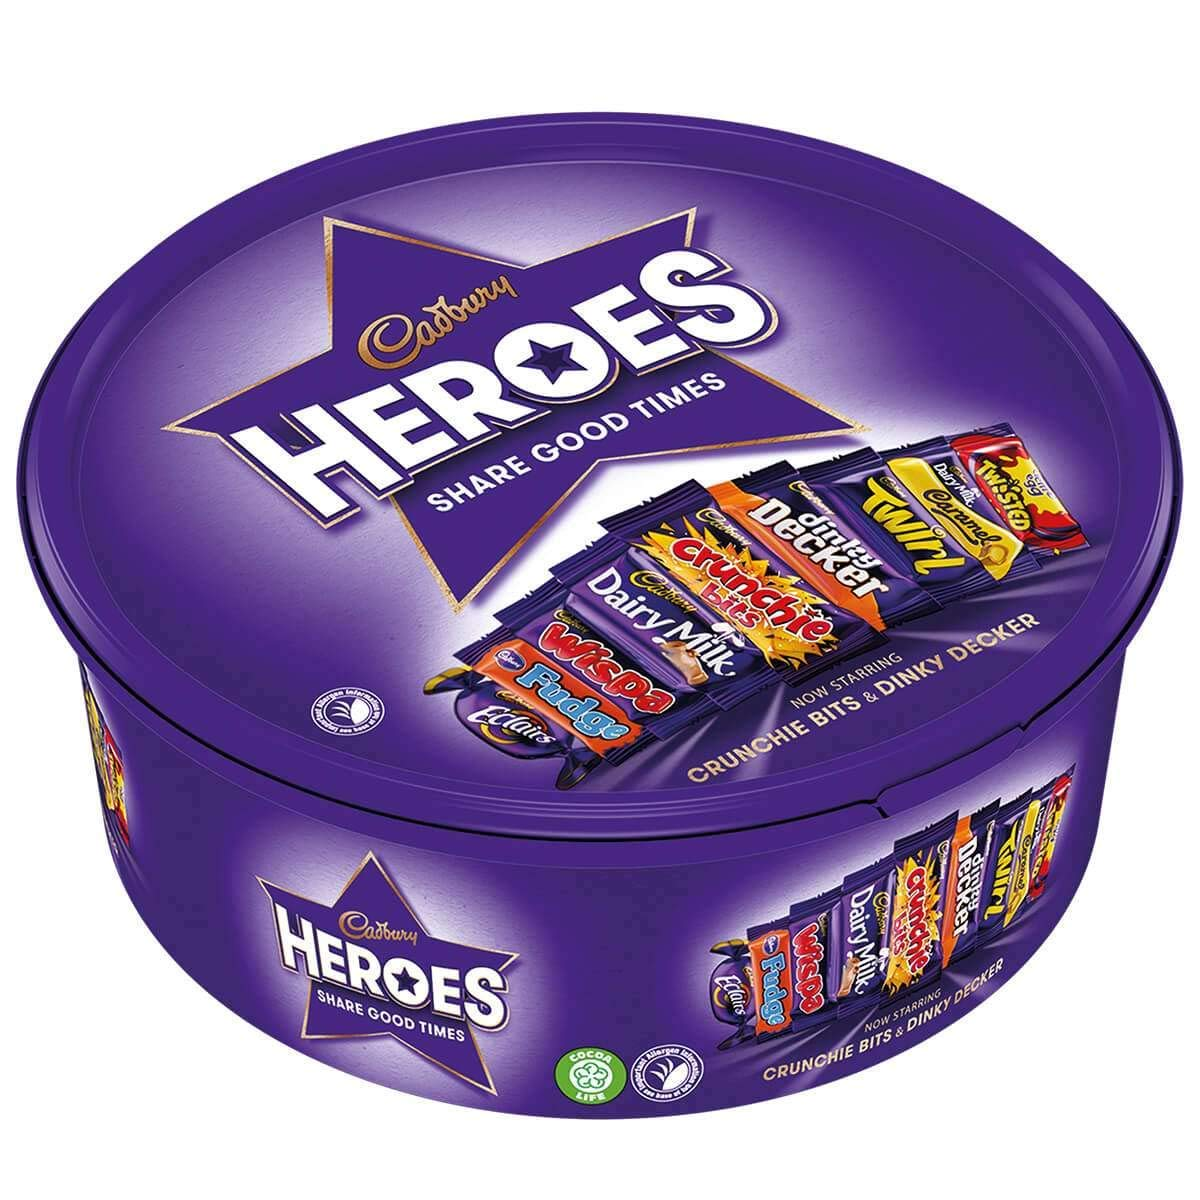 Image result for cadbury heroes